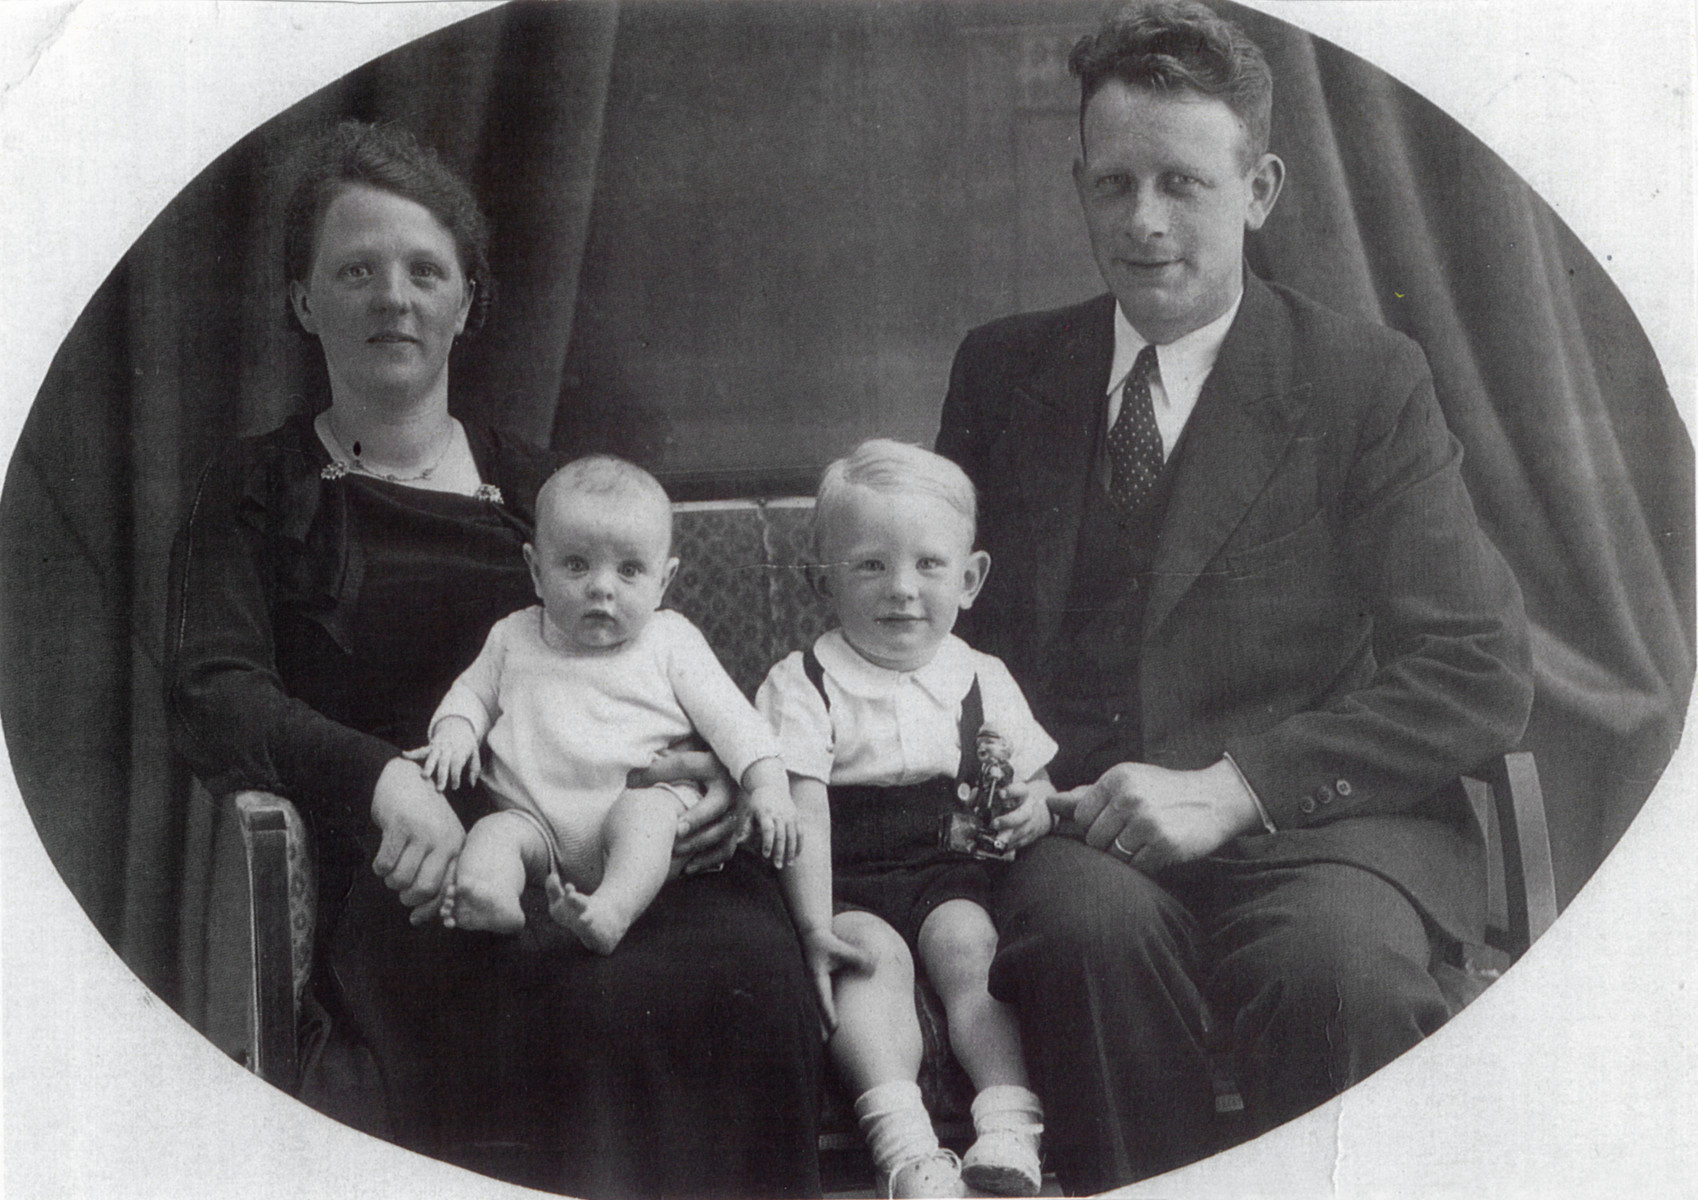 Portrait of two Dutch rescuers with their children.  Pictured are Johannes and Catherine Berkhout with their children Jack and Gerry.